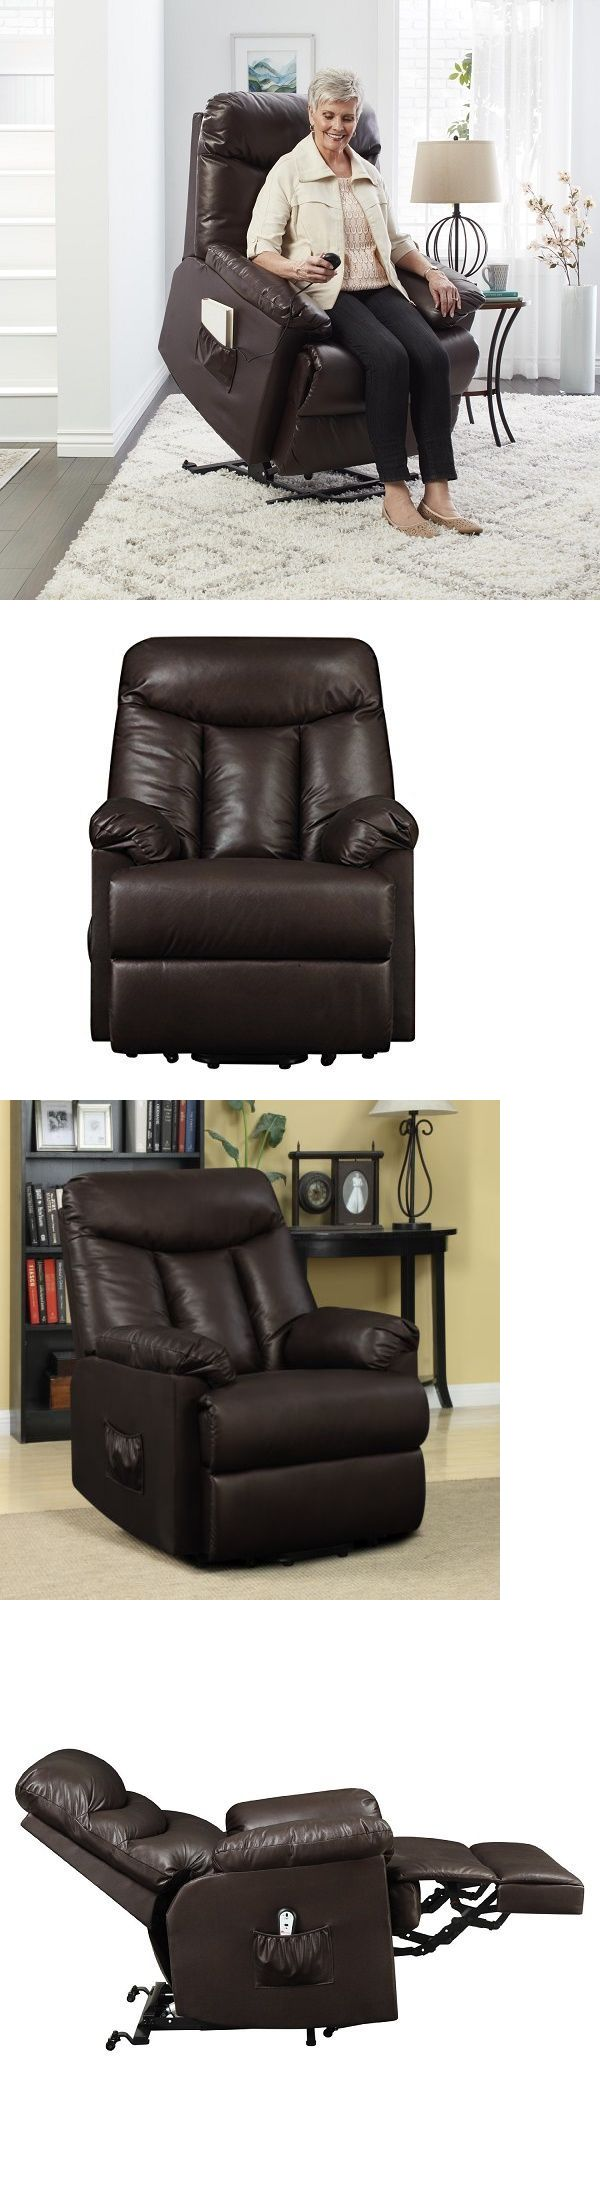 Stairlifts and Elevators Power Recliner Lift Chair Electric Pro Lounger Wall Hugger Medical Support 300Lb  sc 1 st  Pinterest & 35 best Elderly Recliner Sofa Chair images on Pinterest | Sofa ... islam-shia.org